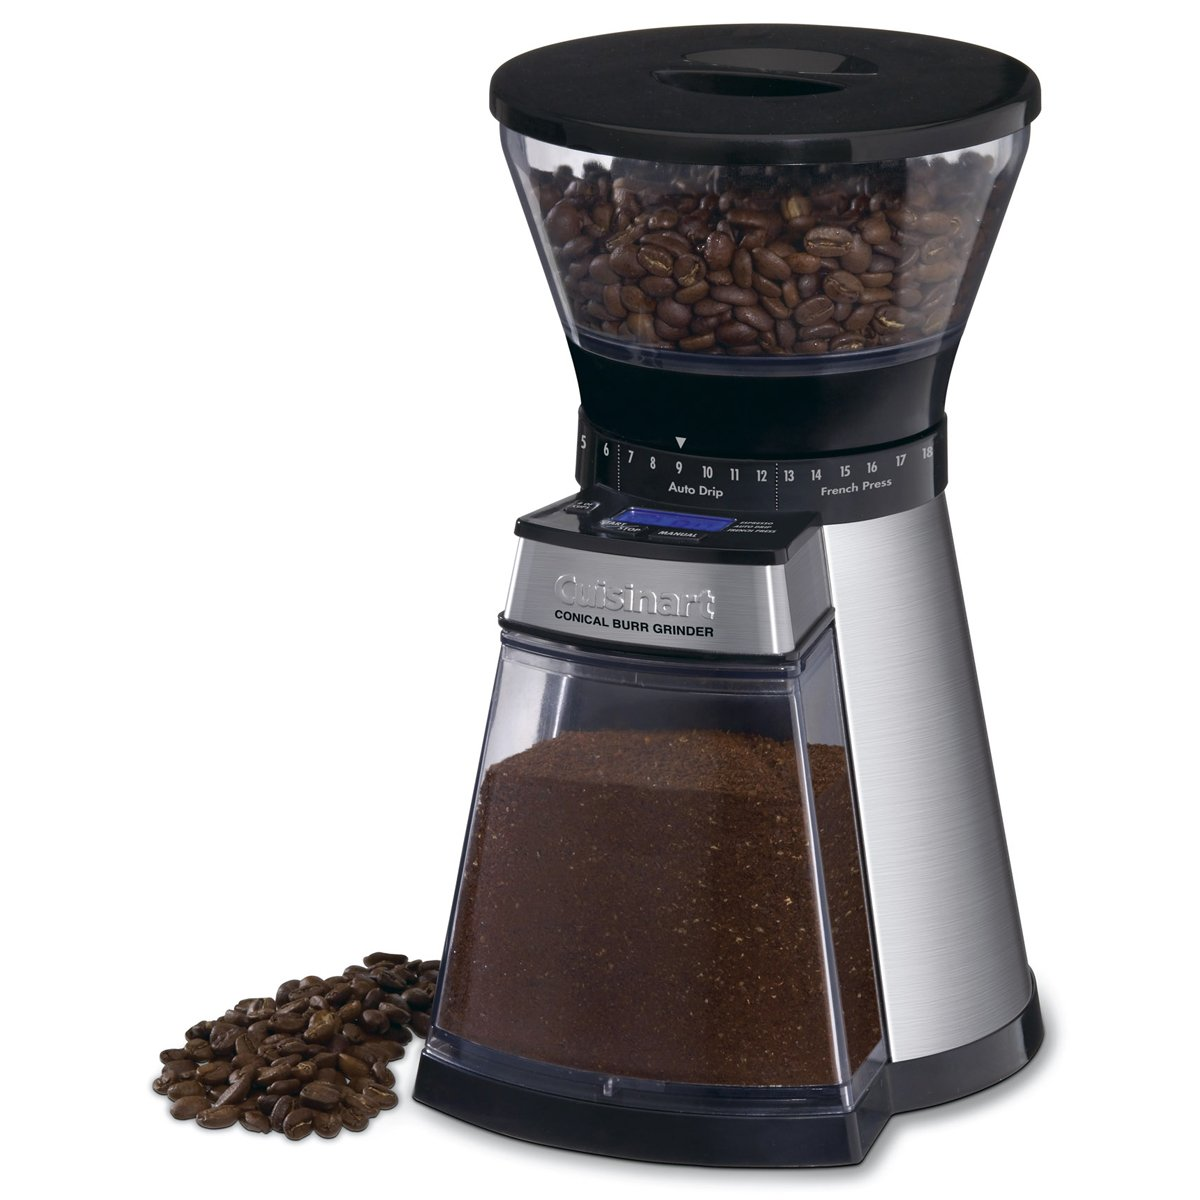 Cuisinart Burr Coffee Grinder by Cuisinart